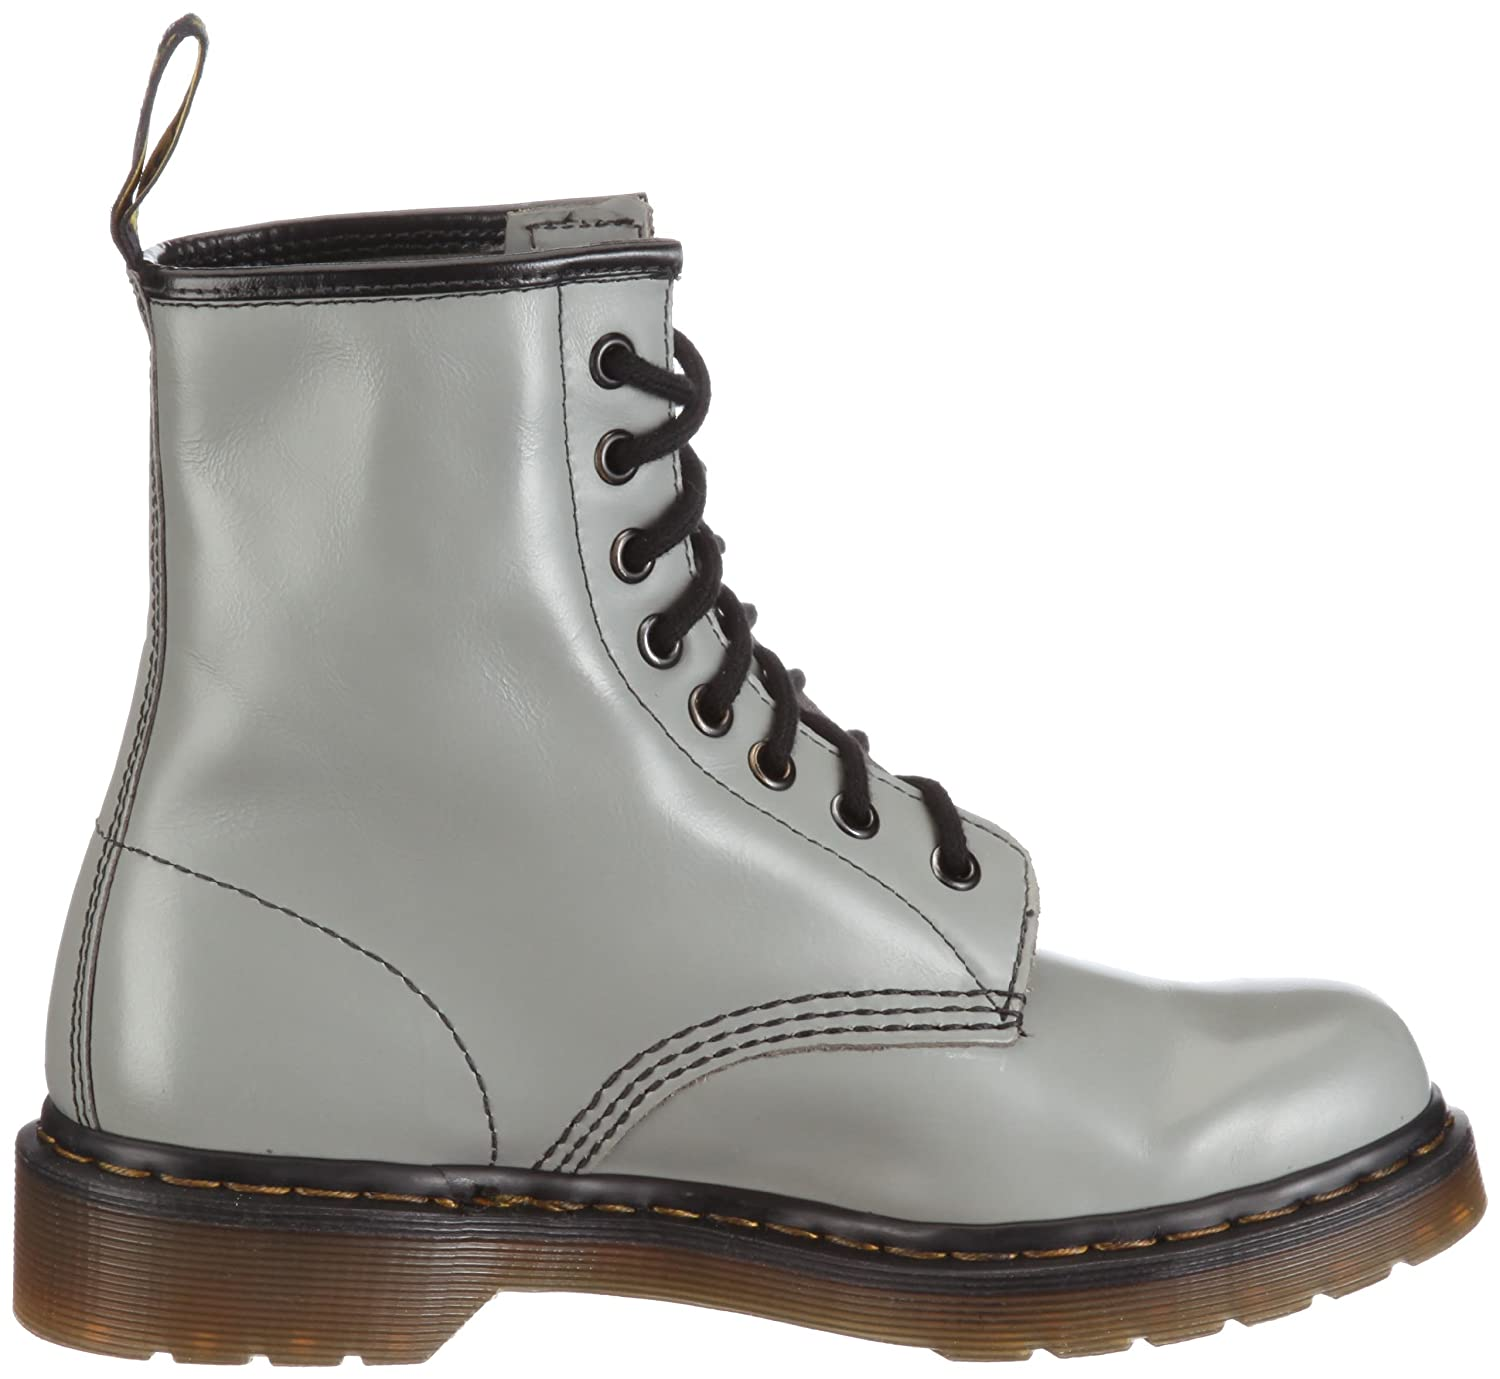 Dr. Martens 1460 8 Eye Boot BROWN 11822212 Unisex - Grey) Erwachsene Stiefel Grigio (Smooth Grey) - 3b17e3